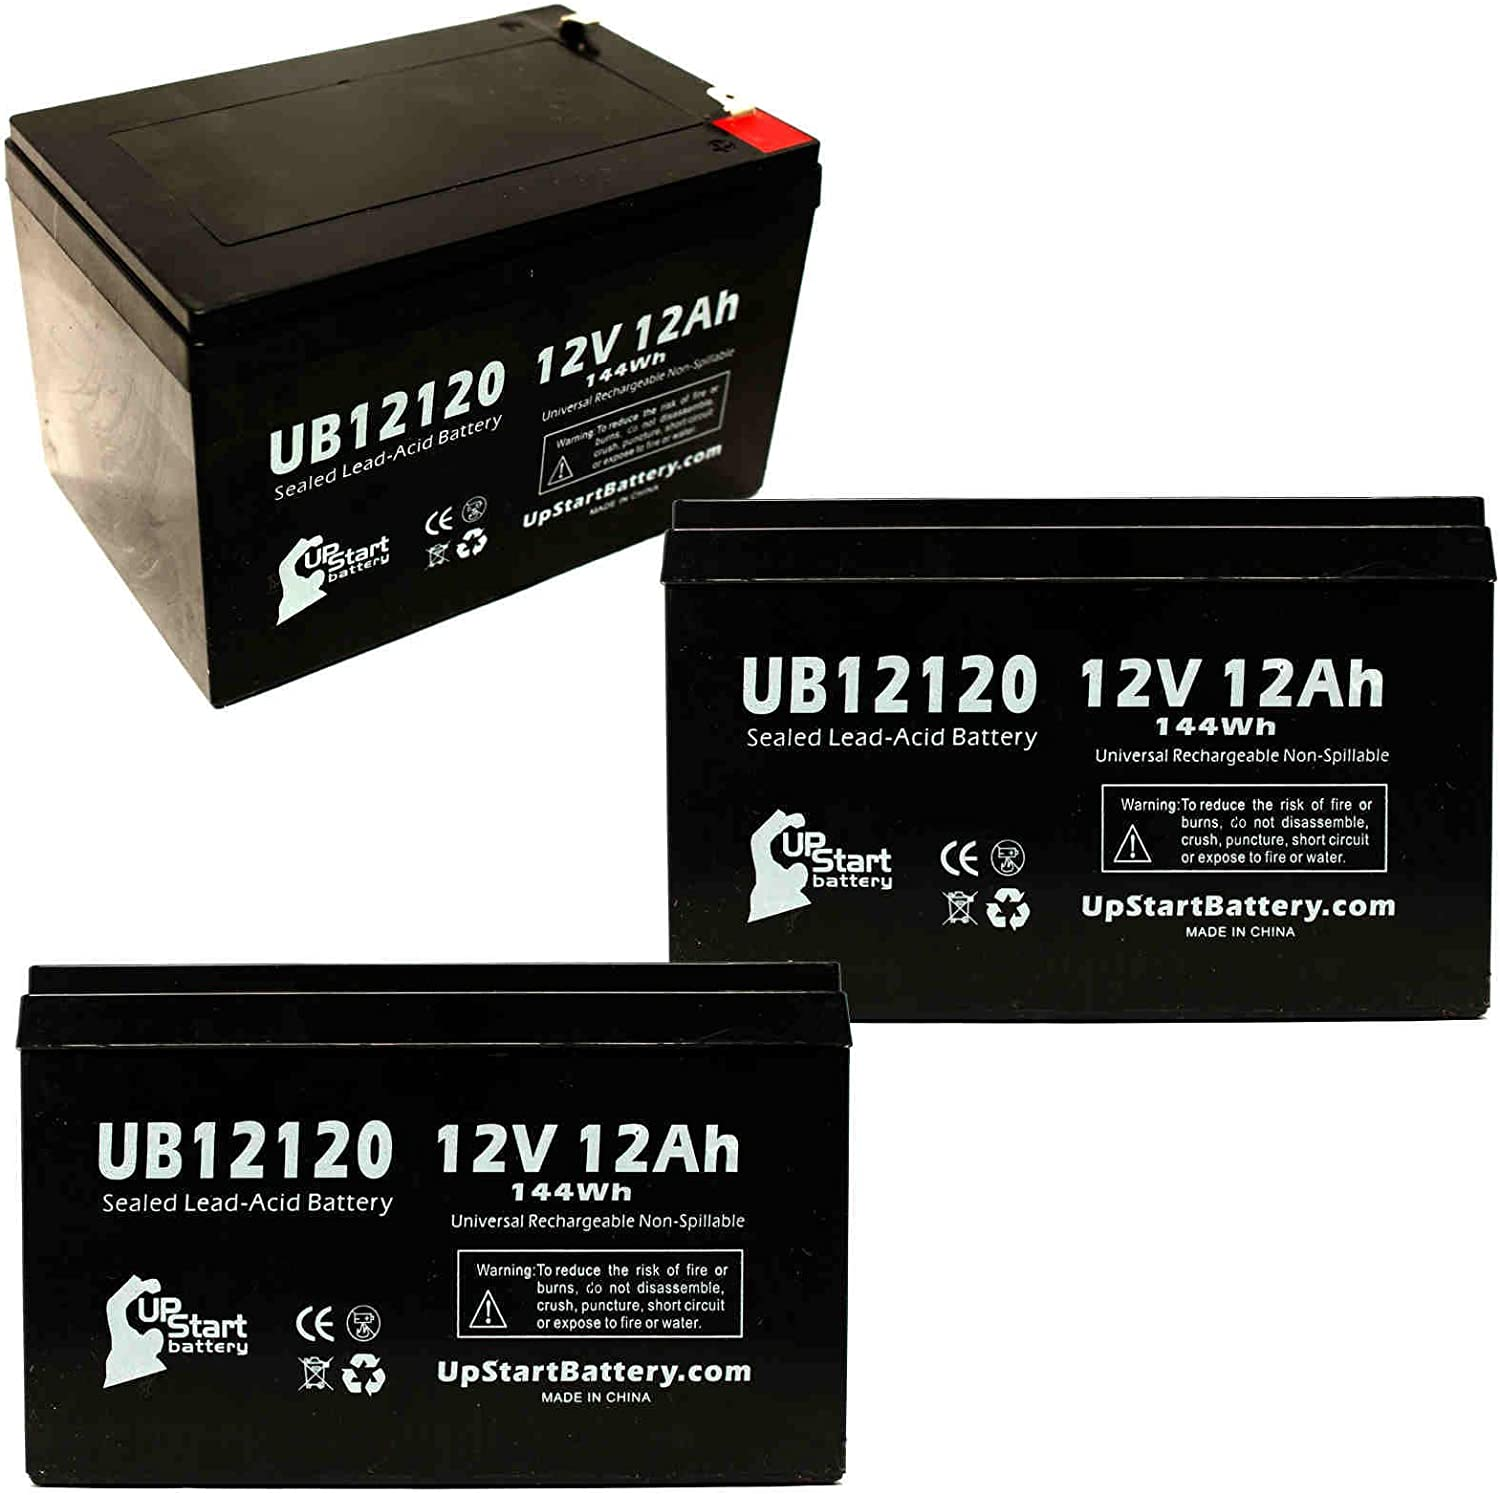 3 Pack Replacement for Enduring 6-DW-12 Battery - Replacement UB12120 Universal Sealed Lead Acid Battery (12V, 12Ah, 12000mAh, F1 Terminal, AGM, SLA) - Includes 6 F1 to F2 Terminal Adapters